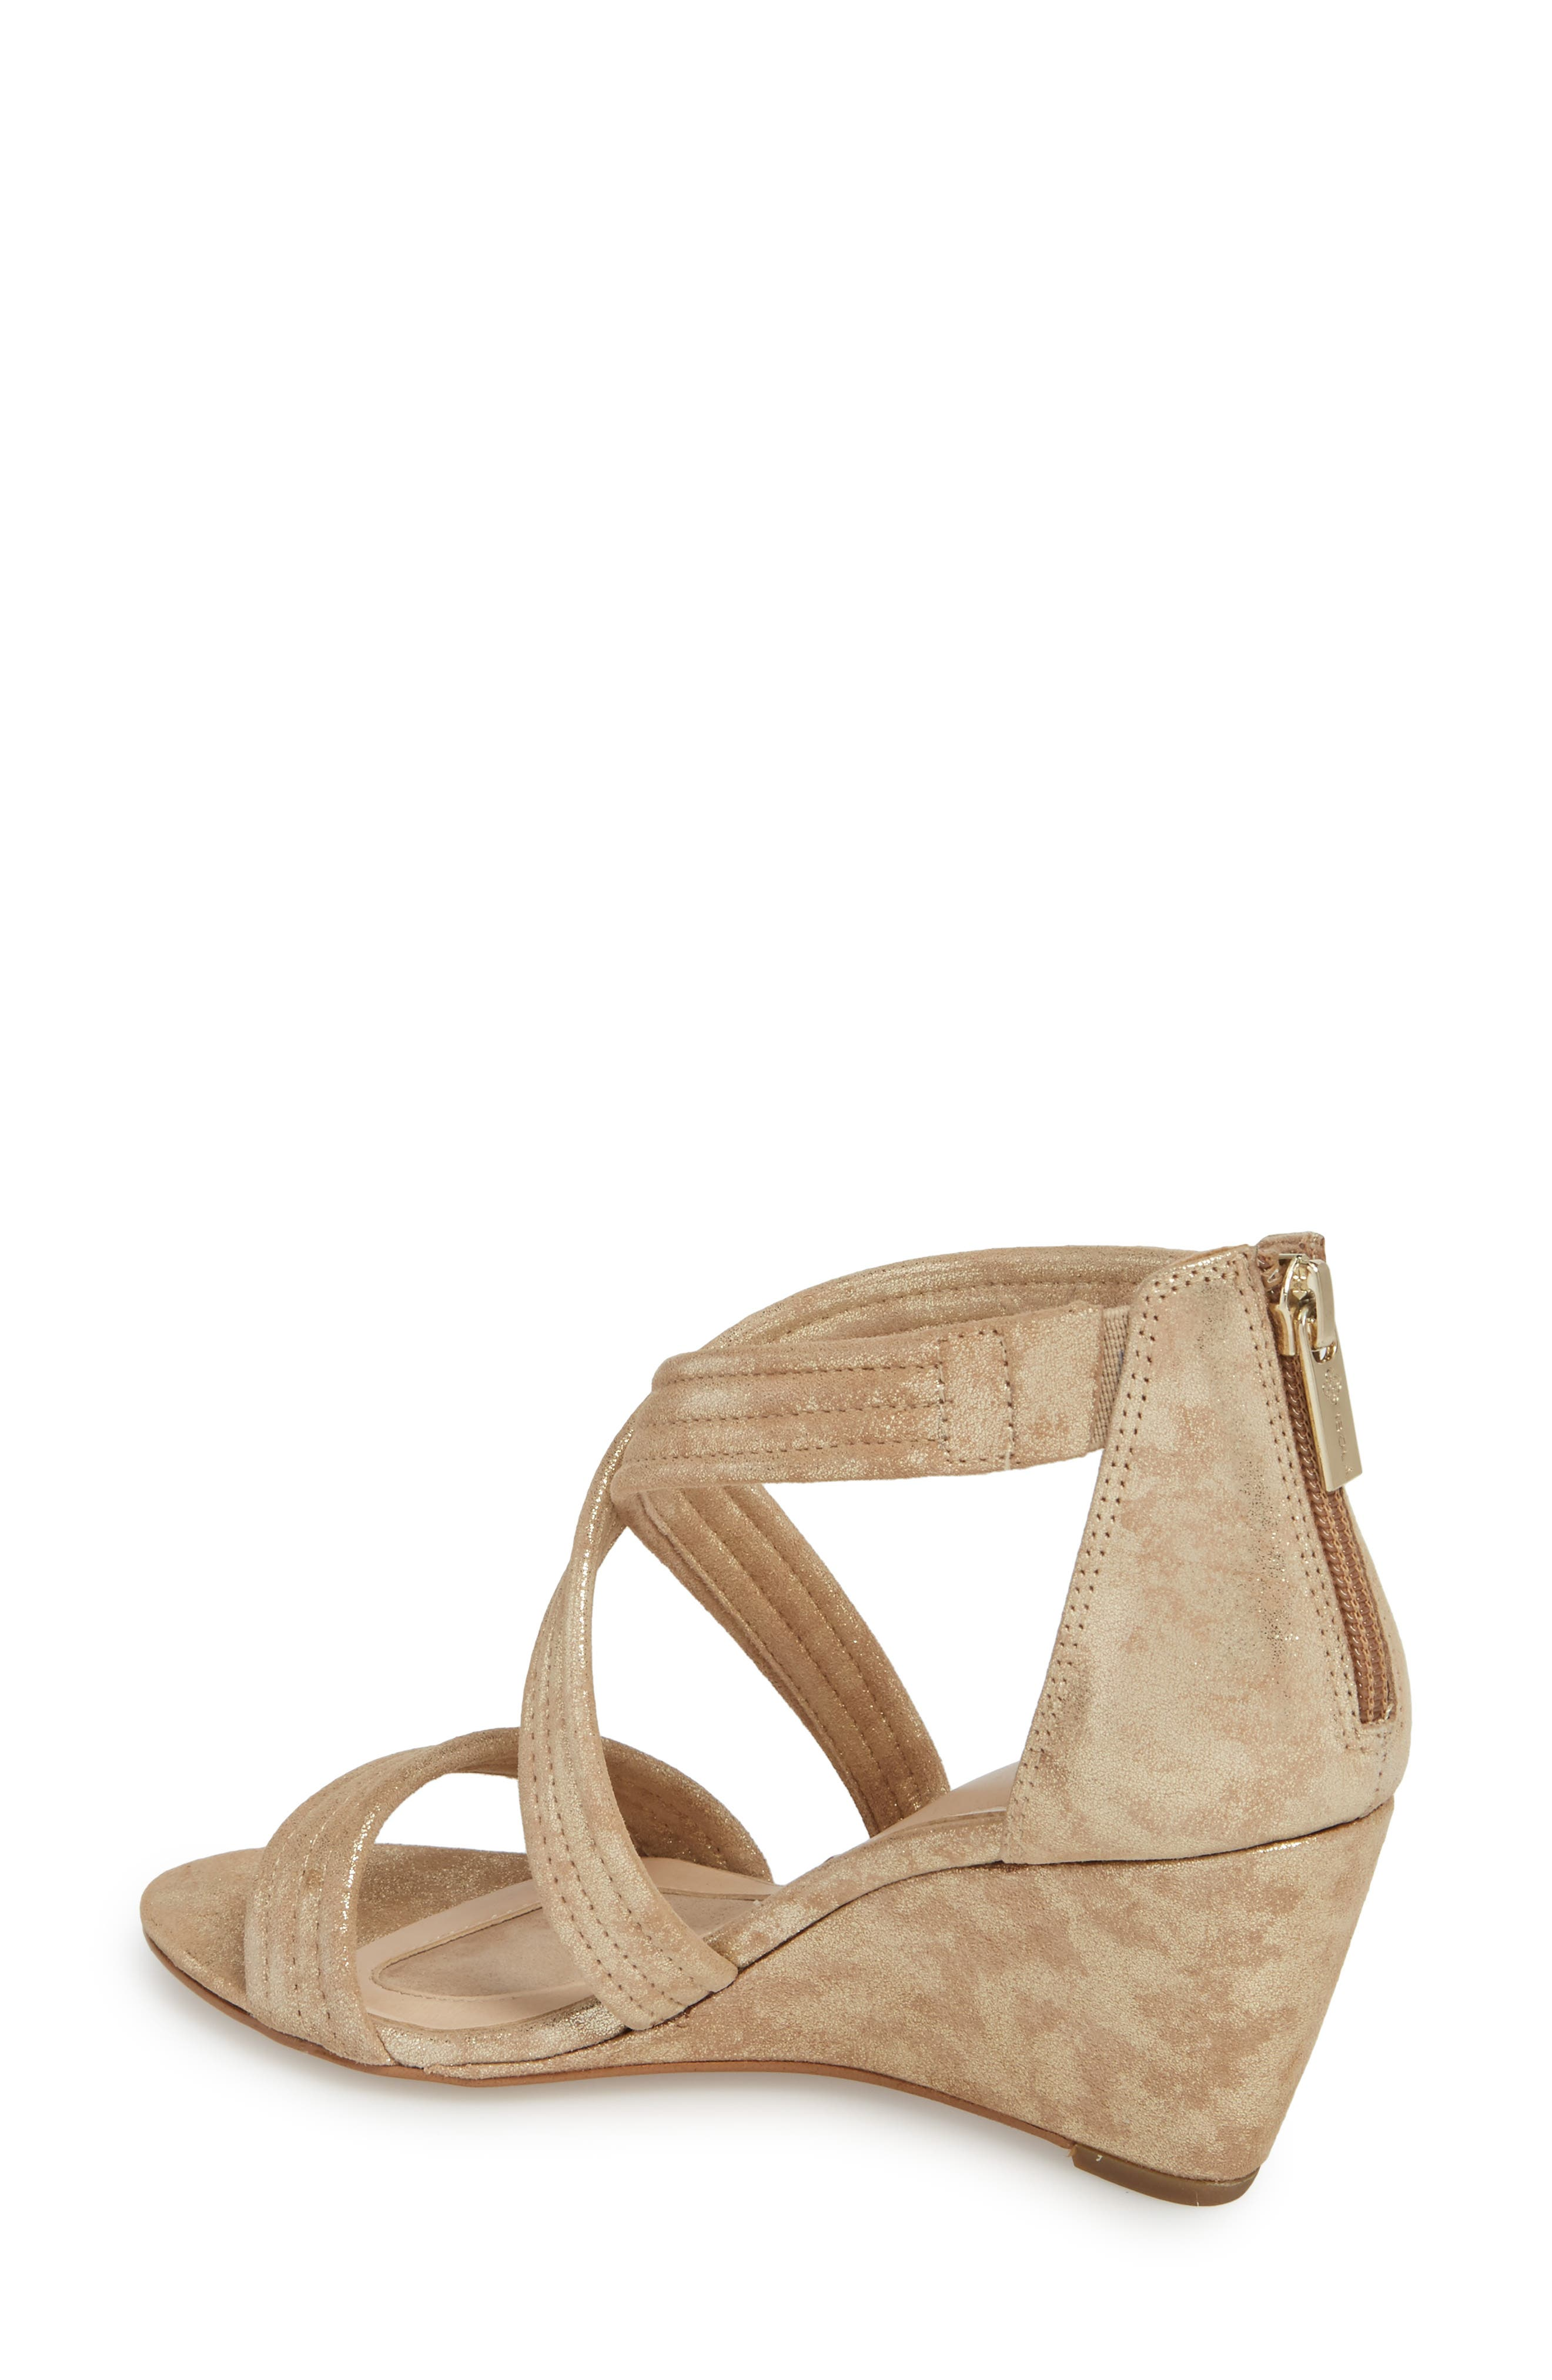 Fia Wedge Sandal,                             Alternate thumbnail 2, color,                             Platino Distressed Suede